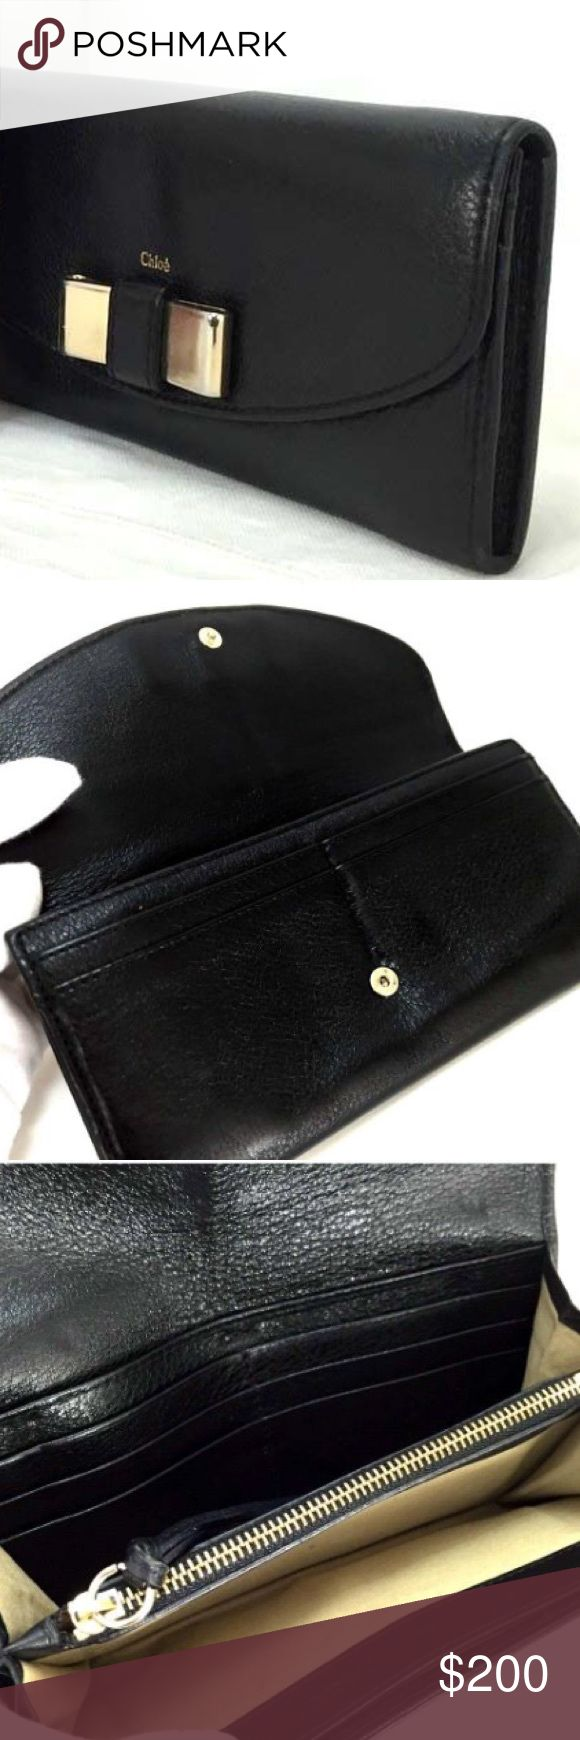 Black Chloe Lilly wallet Another vintage Chloe wallet that will always be super stylish. This is a black calfskin wallet by Chloe. There is some wear, but it is in overall good shape. Chloe Bags Wallets